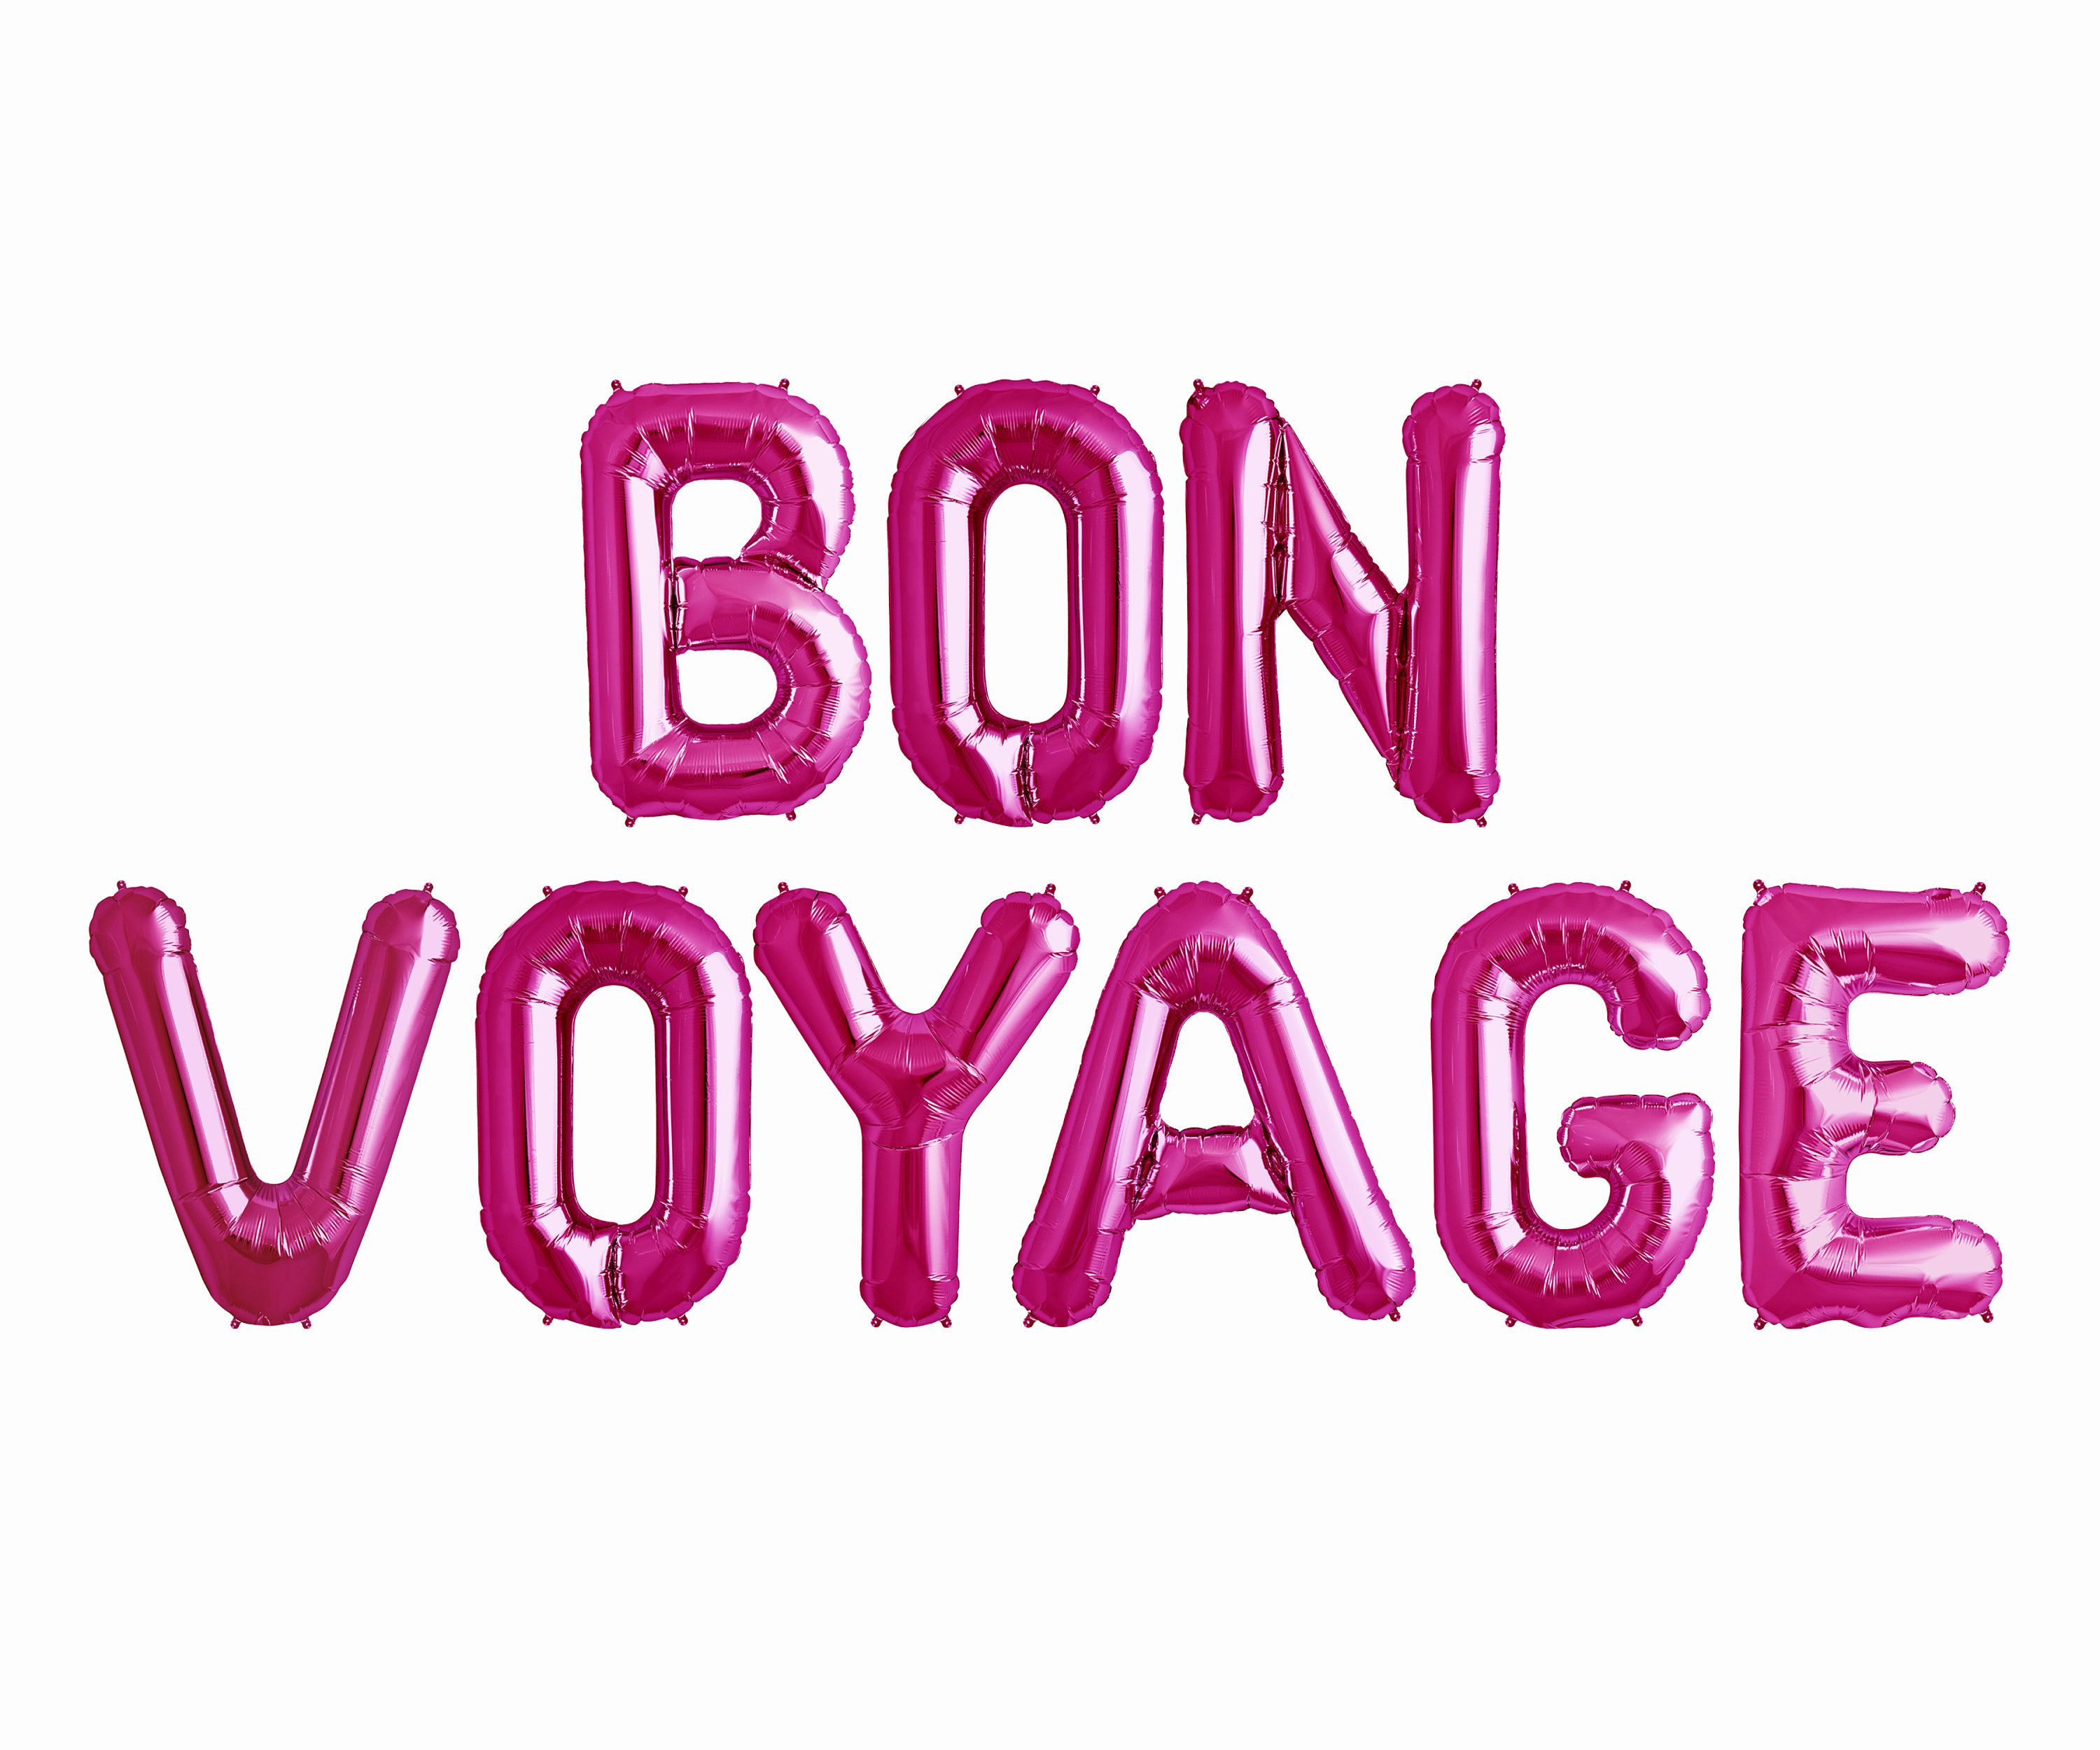 Bon Voyage Balloons Letter Banner - Nautical Theme Party Going